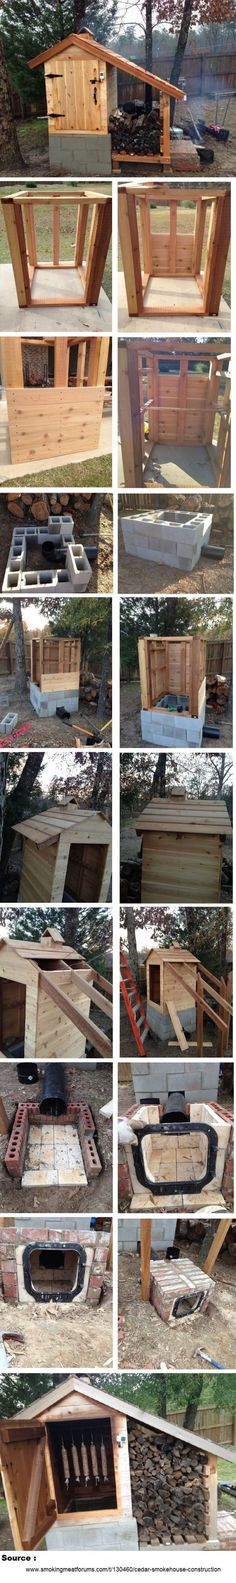 Learn How To Build A Smokehouse This simple way to build a log smokehouse is incredible and such a simple project. Its well known wet orndamp logs smoke and struggle to burn, so why not try this log smokehouse? Get your logs dry before you even need them. Take a look at these great DIY…